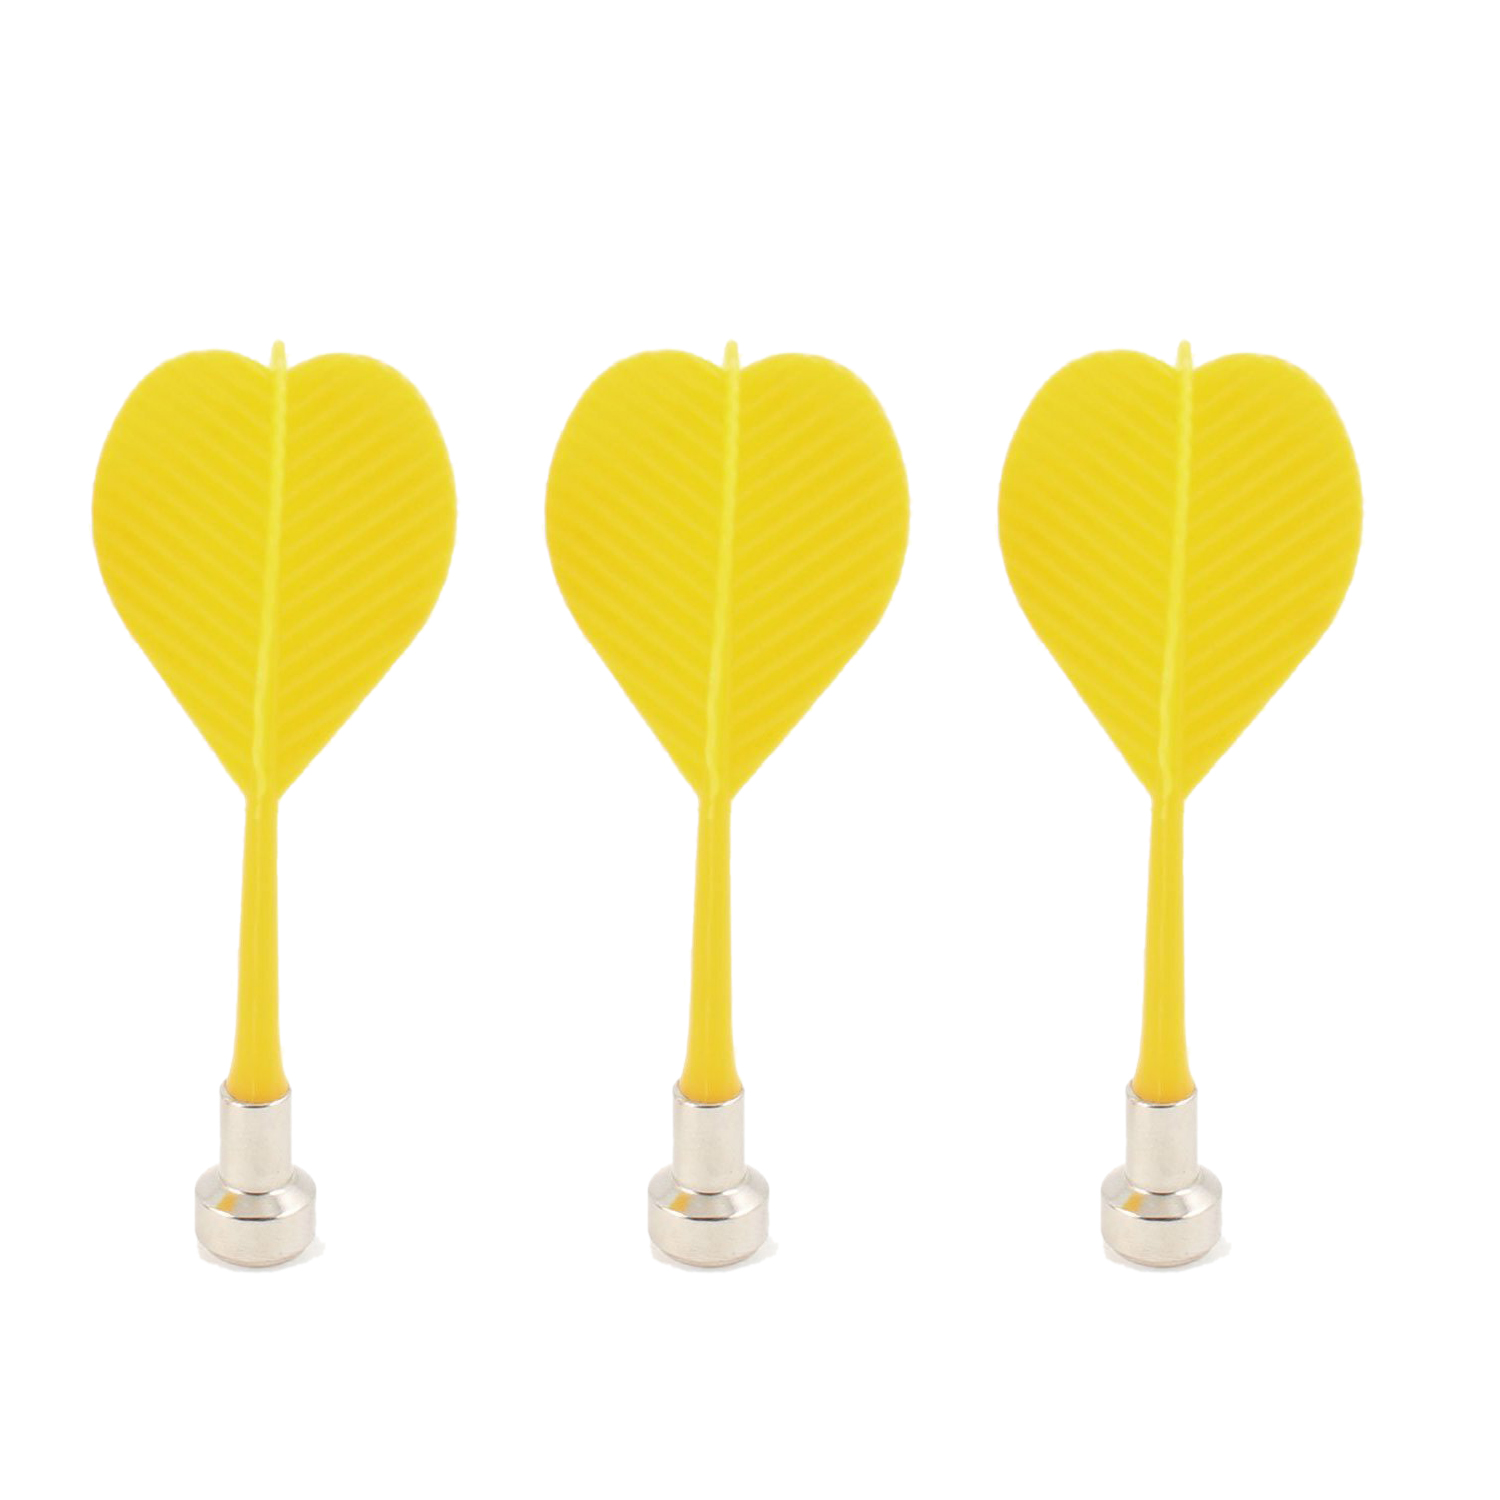 3Pcs Bullseye Target Game Plastic Magnetic Flat Tipped Darts-Yellow